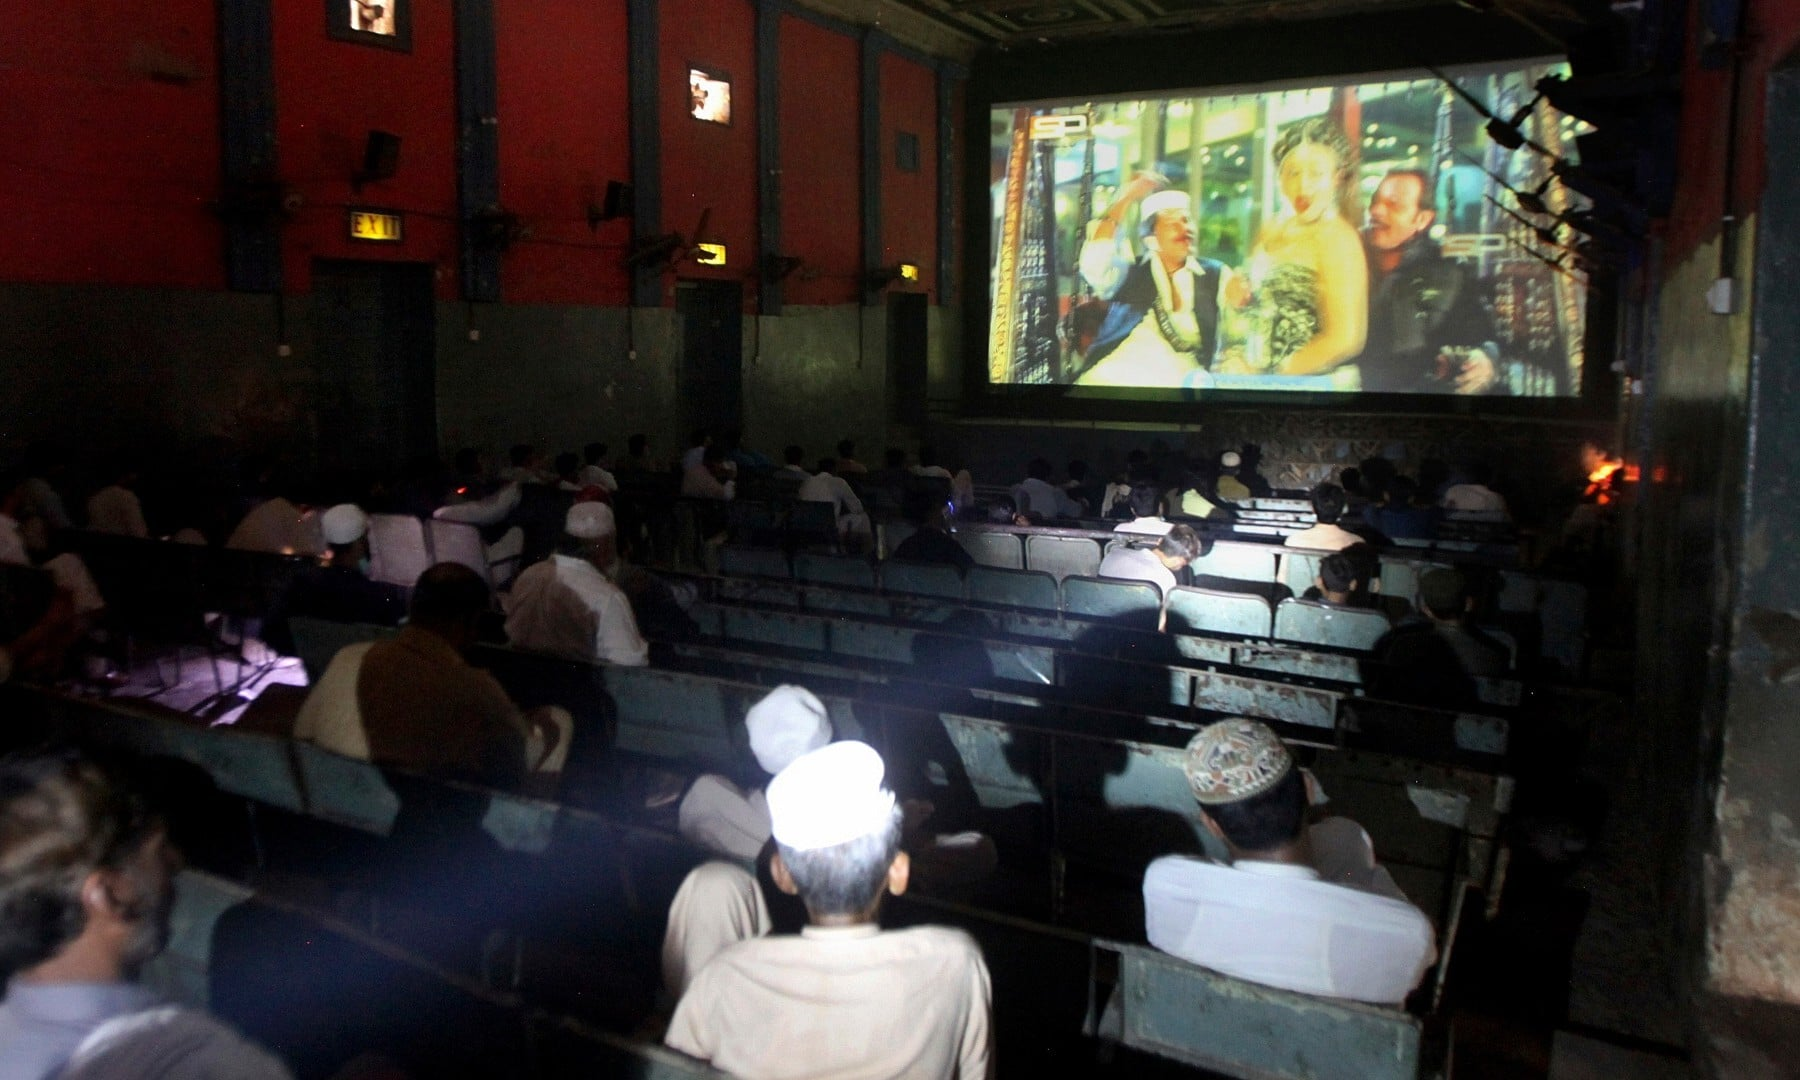 People watch a movie at a cinema following an ease in restrictions that had been imposed to help control the coronavirus in Peshawar on August 10. — AP